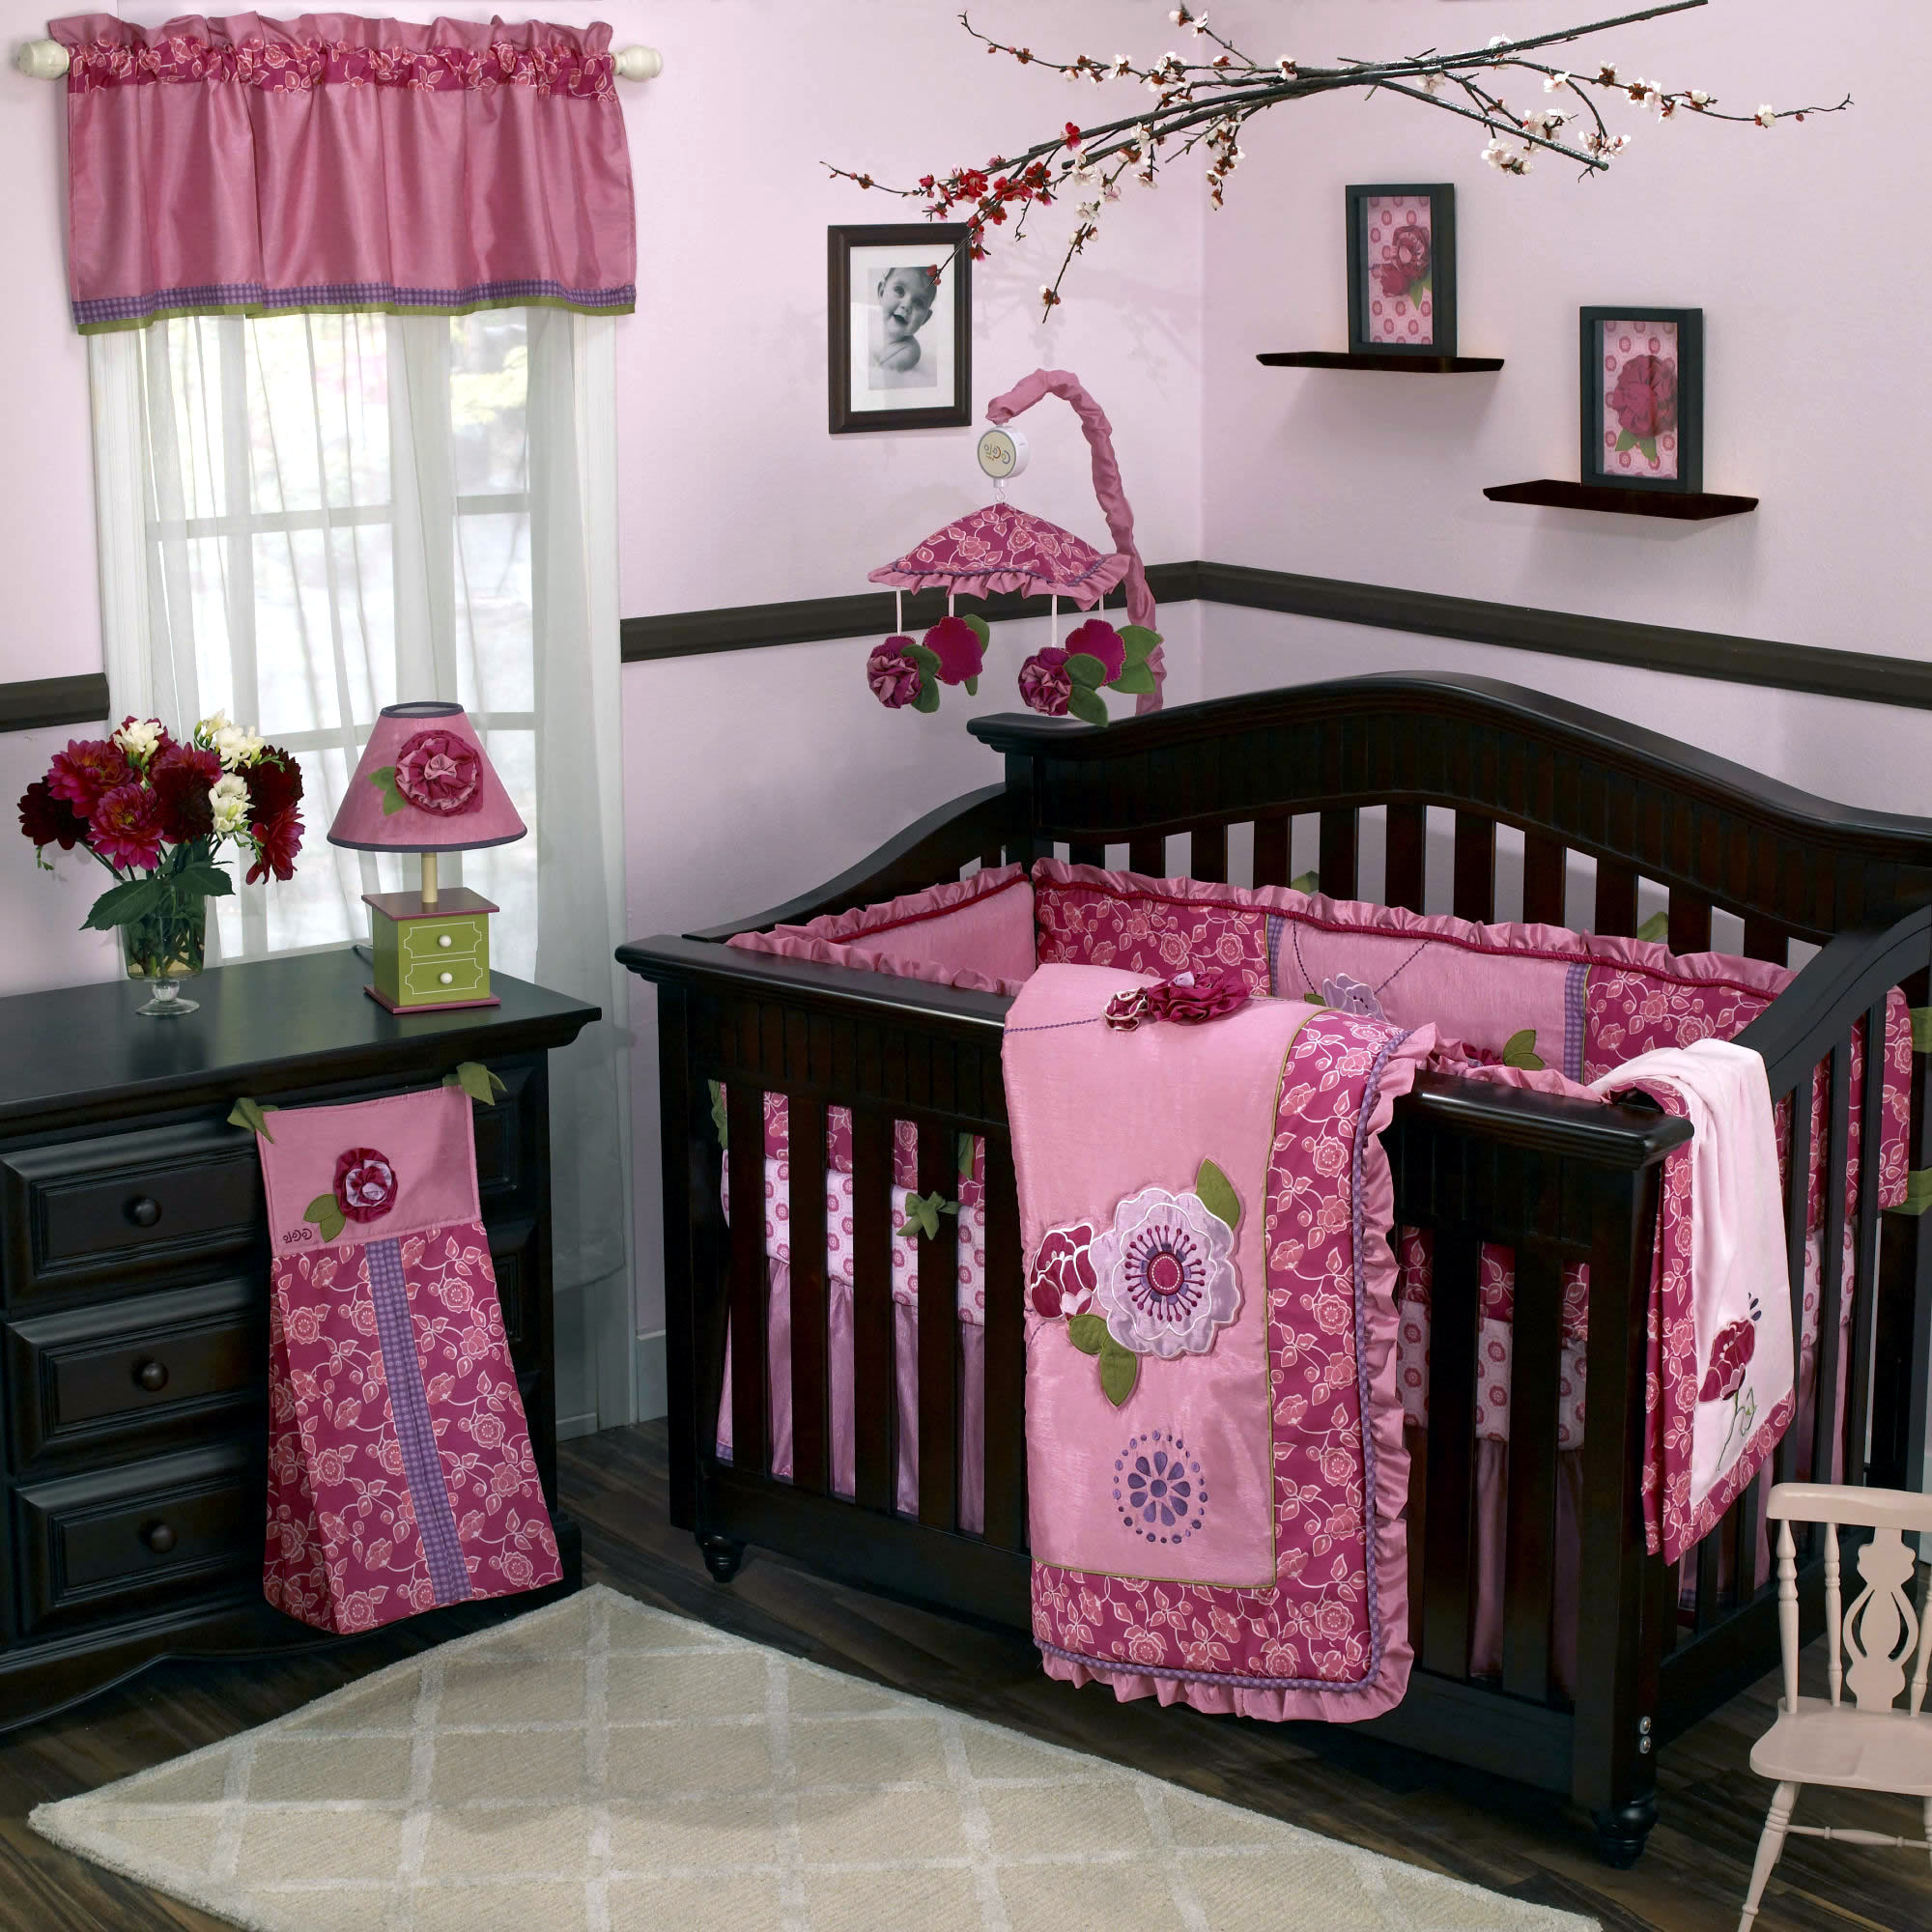 Baby room ideas for small apartment practical interior - Toddler bedroom ideas for small rooms ...